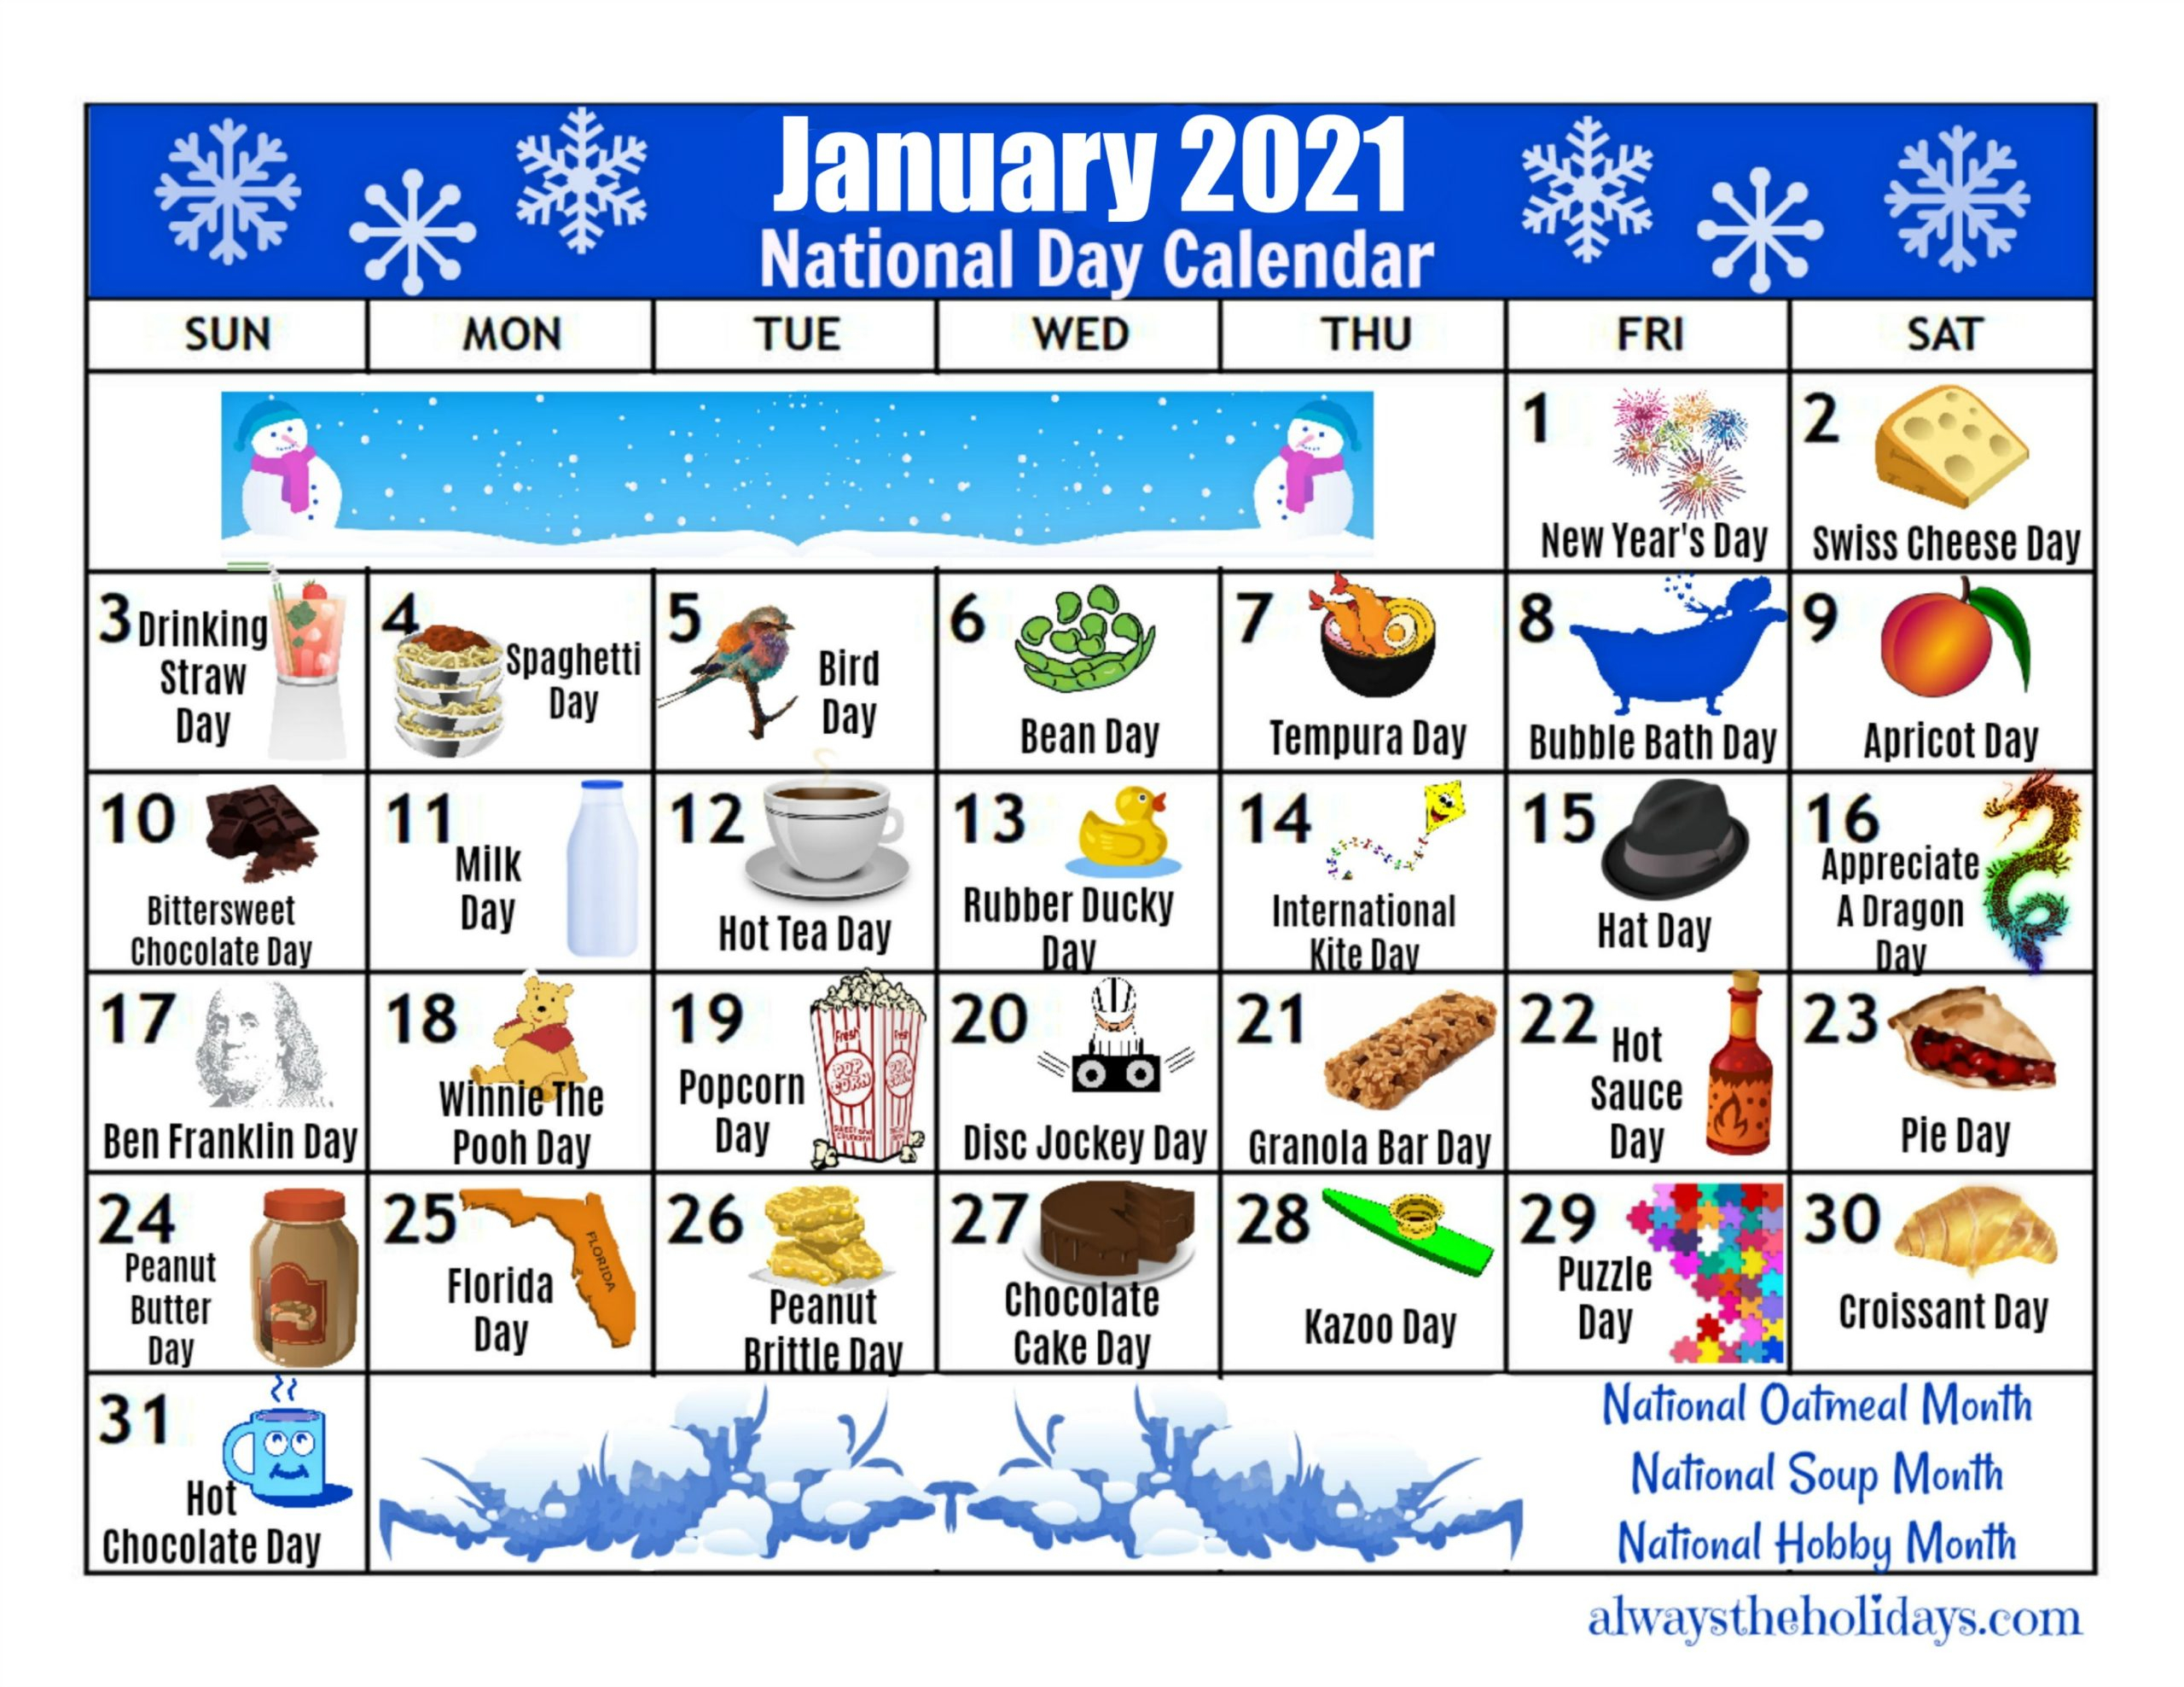 December 2020 And January 2021 Calendar With Holidays